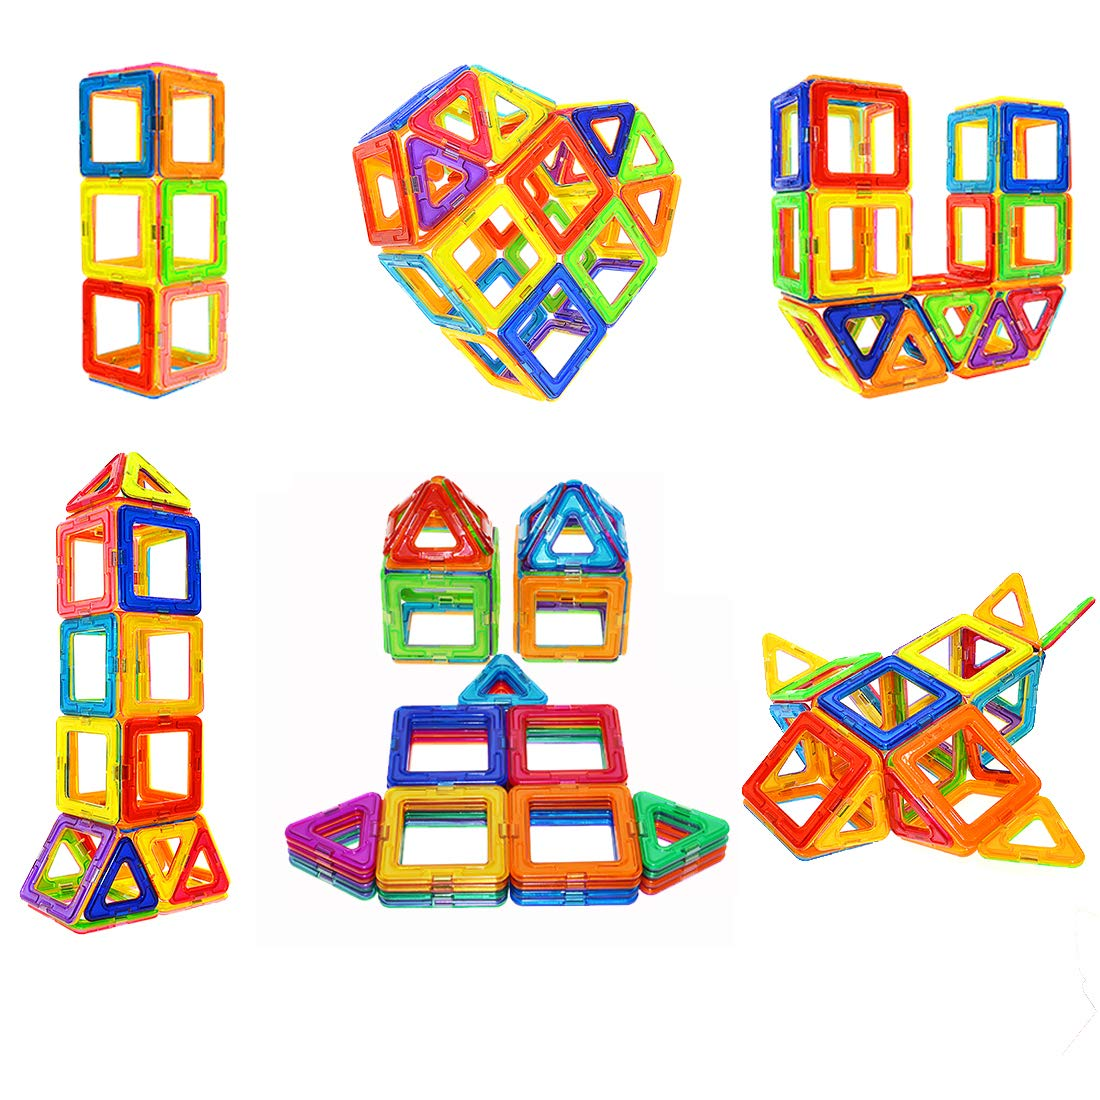 Soyee Magnetic Magnetic Blocks Kit STEM B07FM47VS9 Educational Toys for 3 Year Old Boys and Girls Creative Construction Fun Magnetic Tiles Kit for Toddlers - 30pcs Starter Set B07FM47VS9, 吾妻町:043ab977 --- amlakyekta.ir